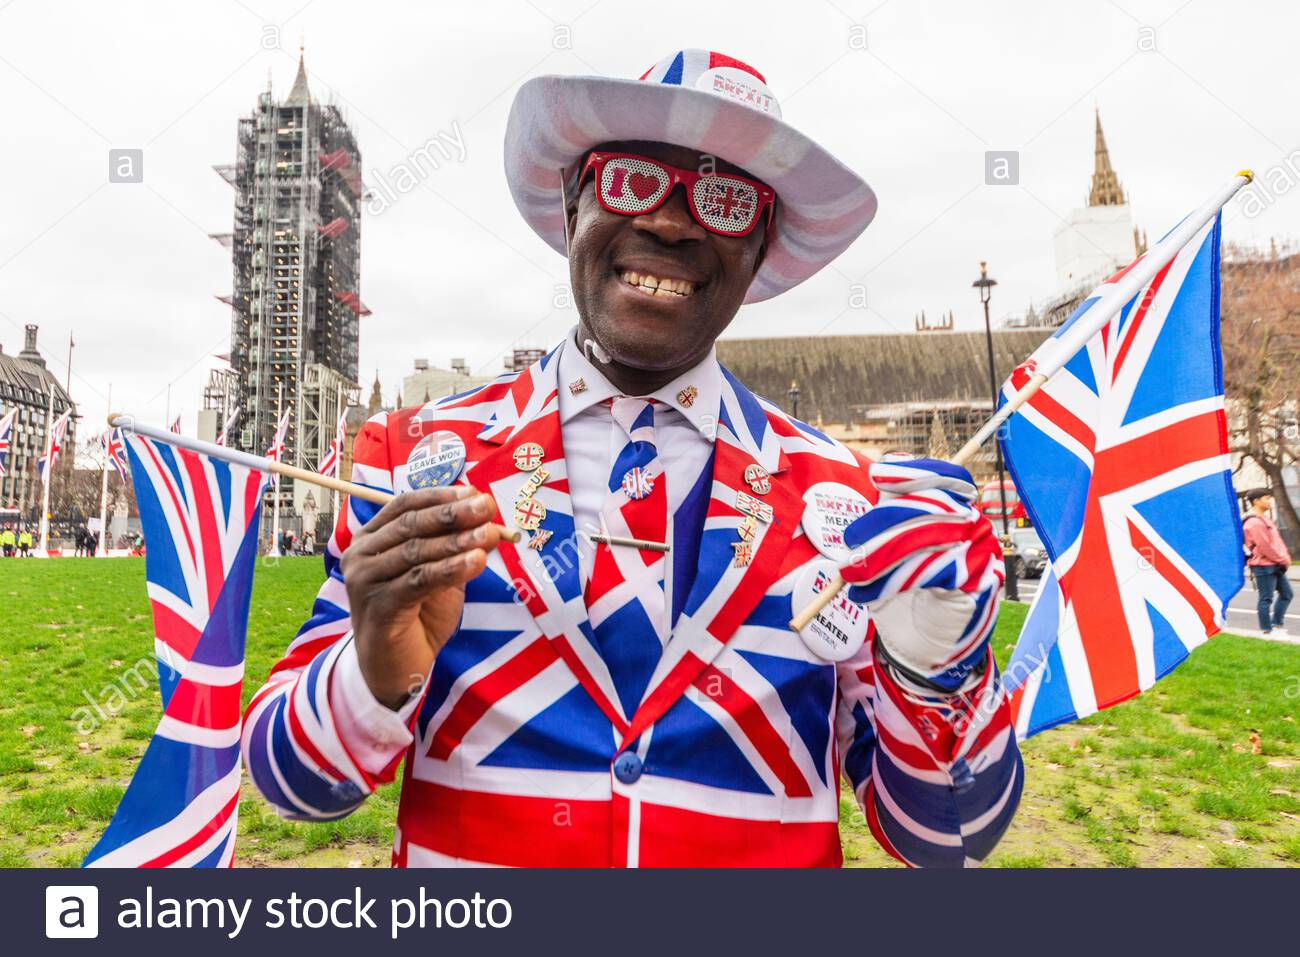 parliament-square-westminster-london-uk-31st-jan-2020-on-the-day-that-the-uk-is-set-to-leave-the-european-union-a-celebration-event-is-due-to-take-place-outside-parliament-people-from-both-leave-and-remain-have-been-gathering-outside-with-confrontations-between-the-two-factions-joseph-afrane-credit-avpicsalamy-live-news-2AT8F45.jpg